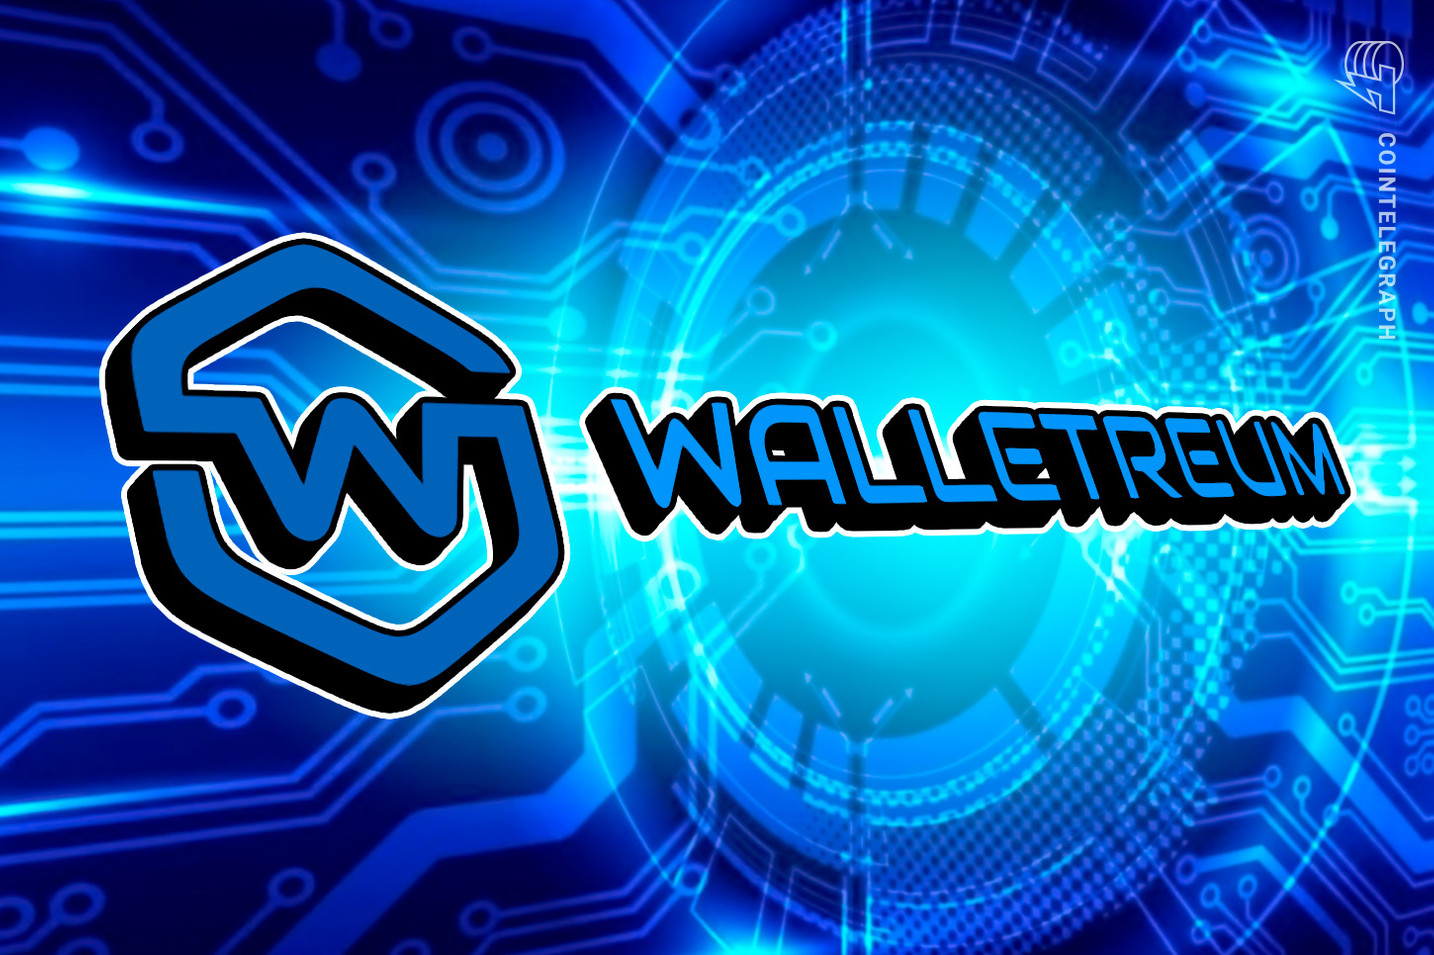 Walletreum is live – Road to financial freedom with DeFi & AI